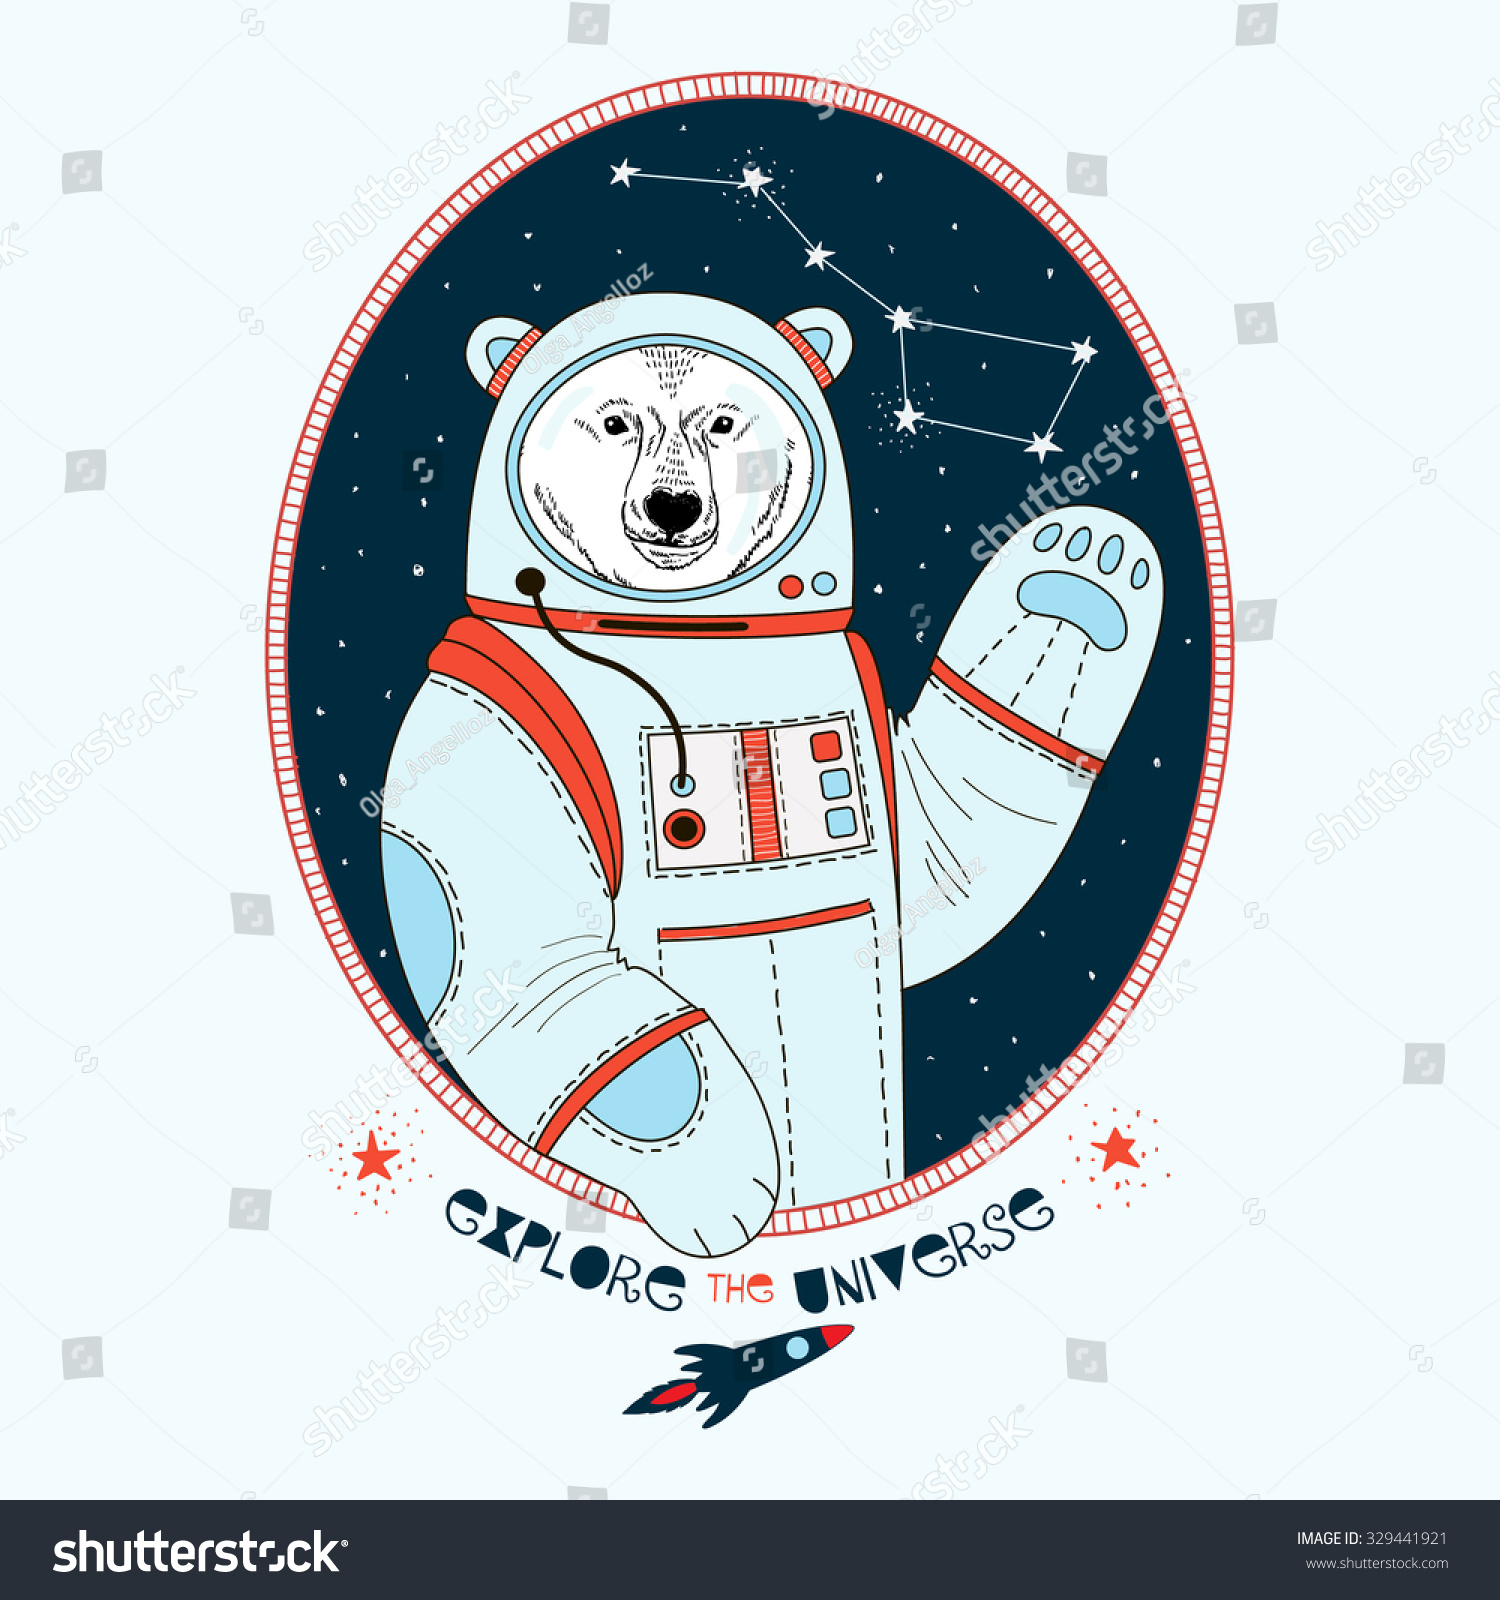 Polar bear astronaut outer space kid stock vector for Outer space industrial design